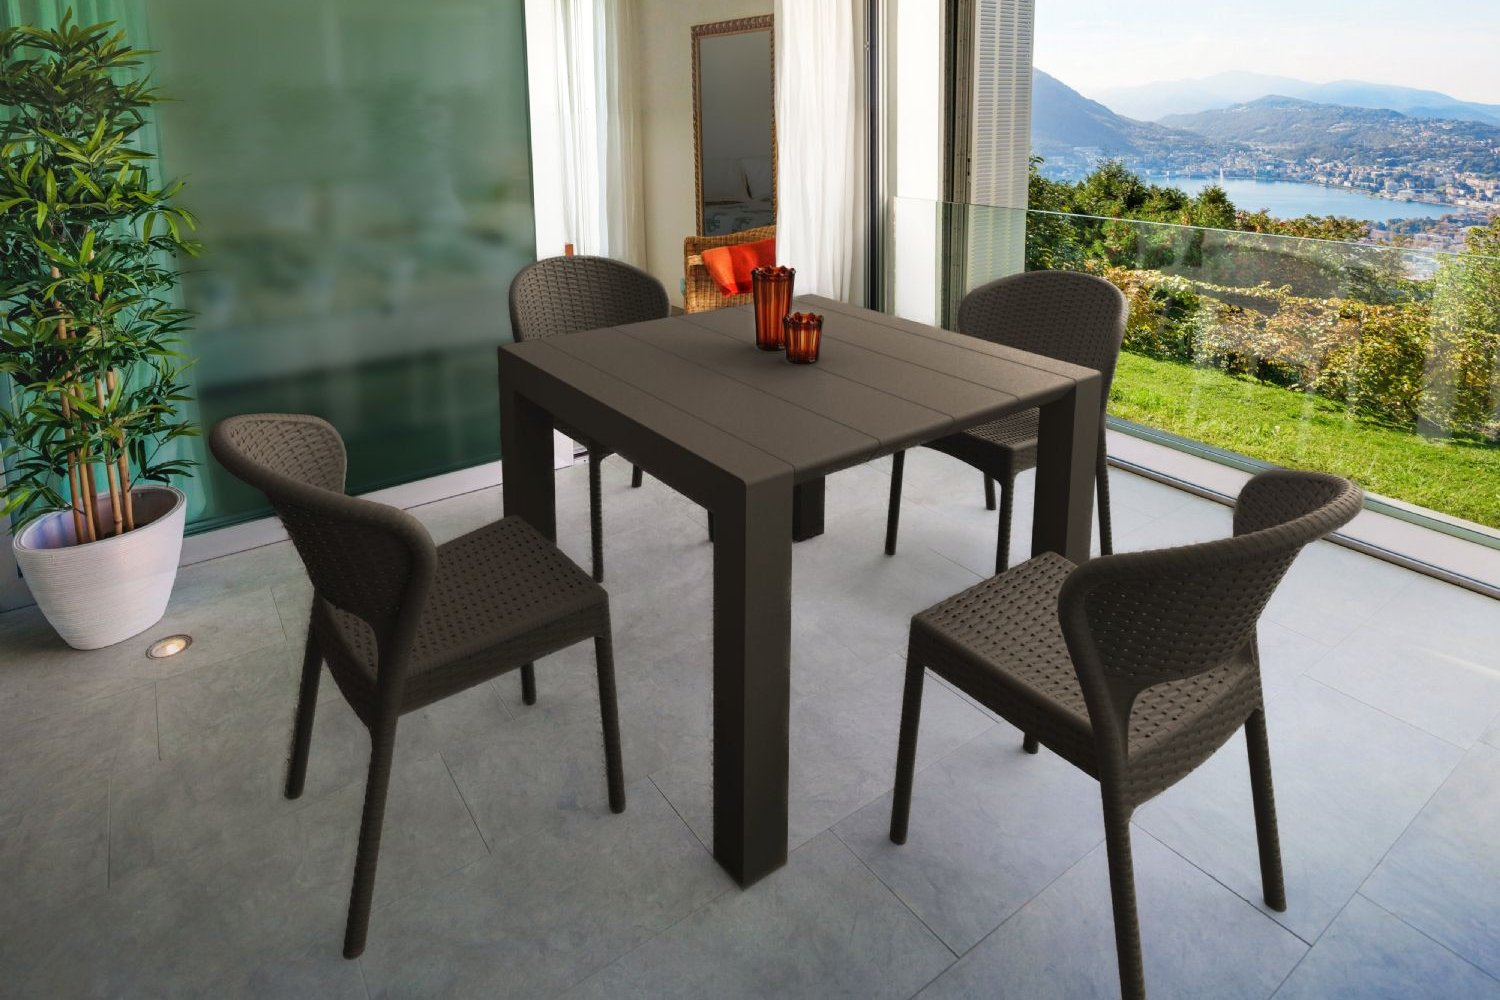 Daytona Extendable Dining Set 5 Piece Brown ISP8182S-BR - 1